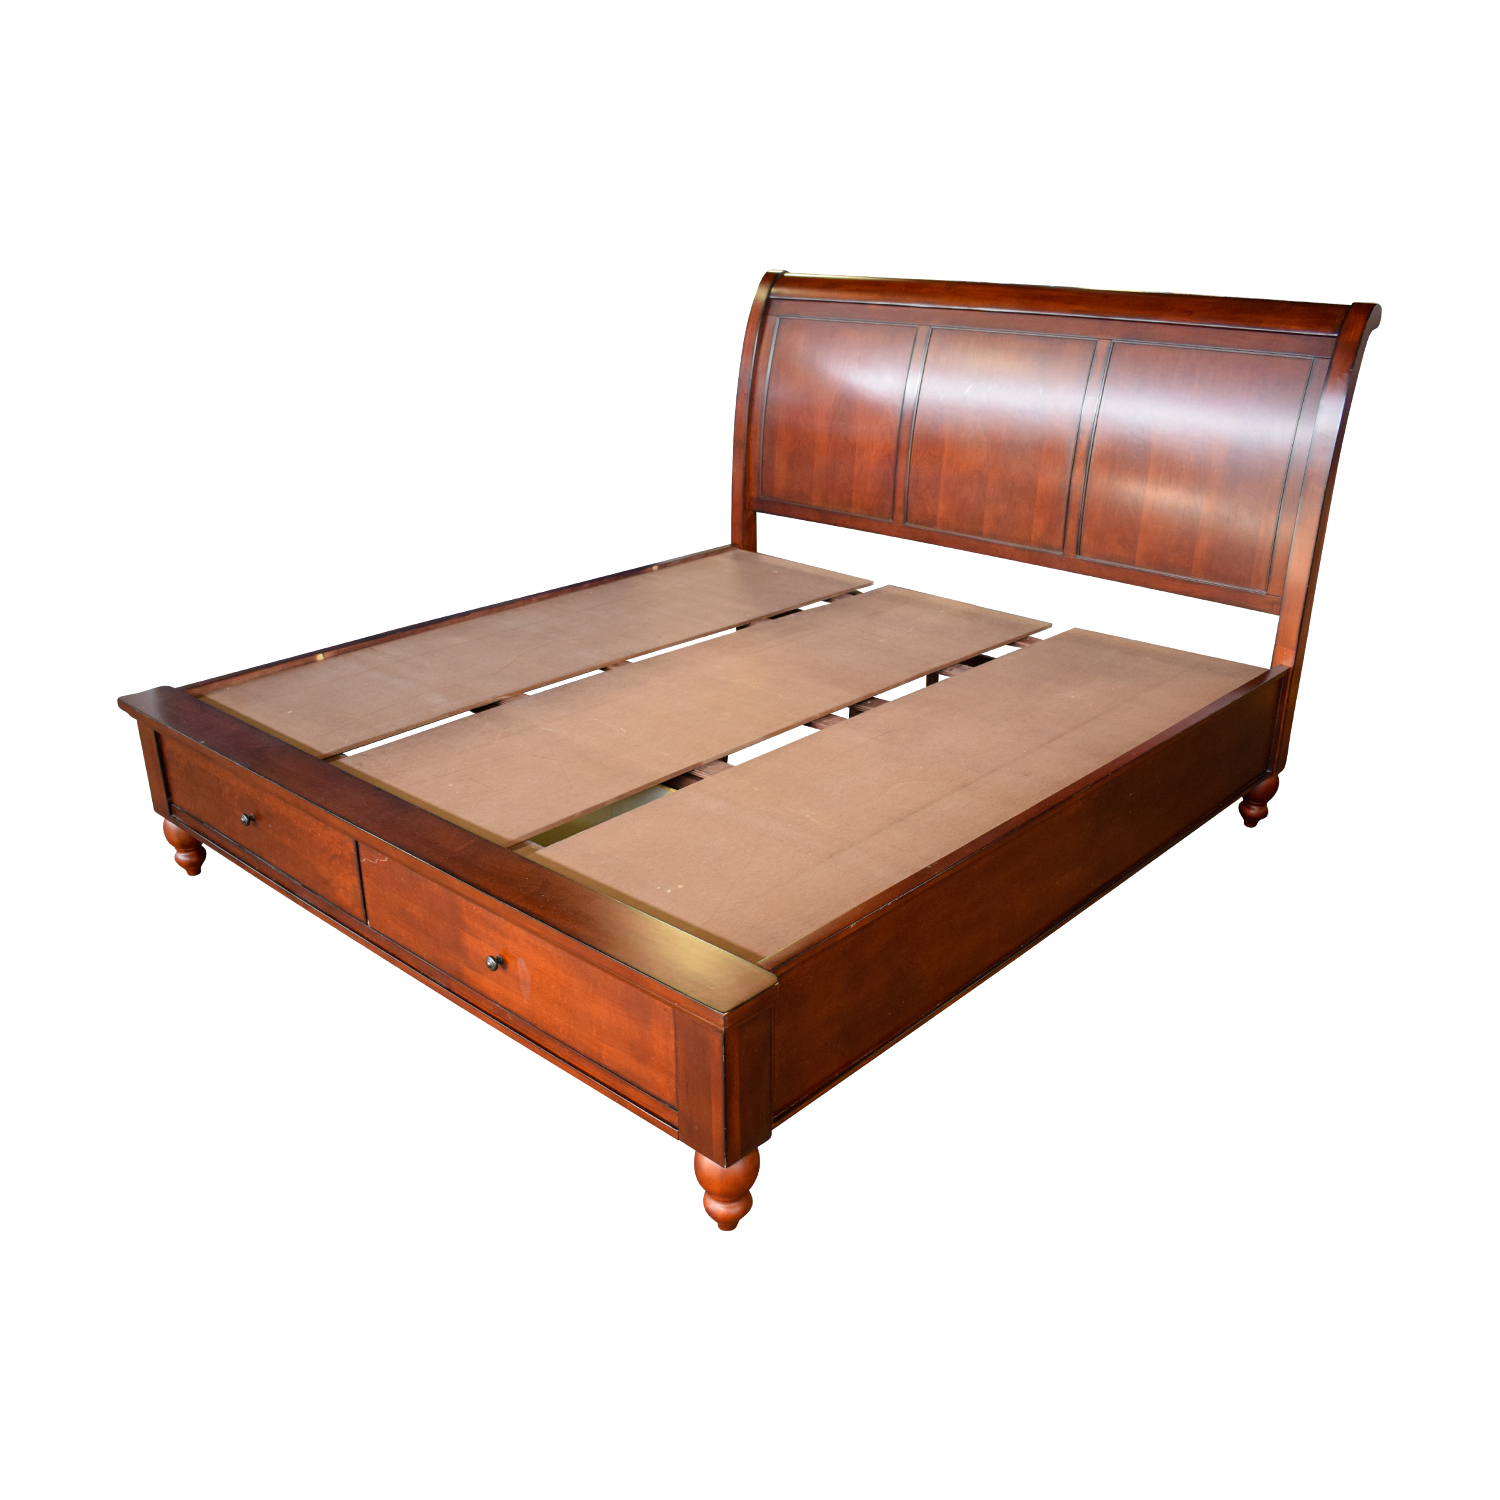 66 Off Aspenhome Aspen Home Cambridge King Sleigh Bed Frame With Storage Beds